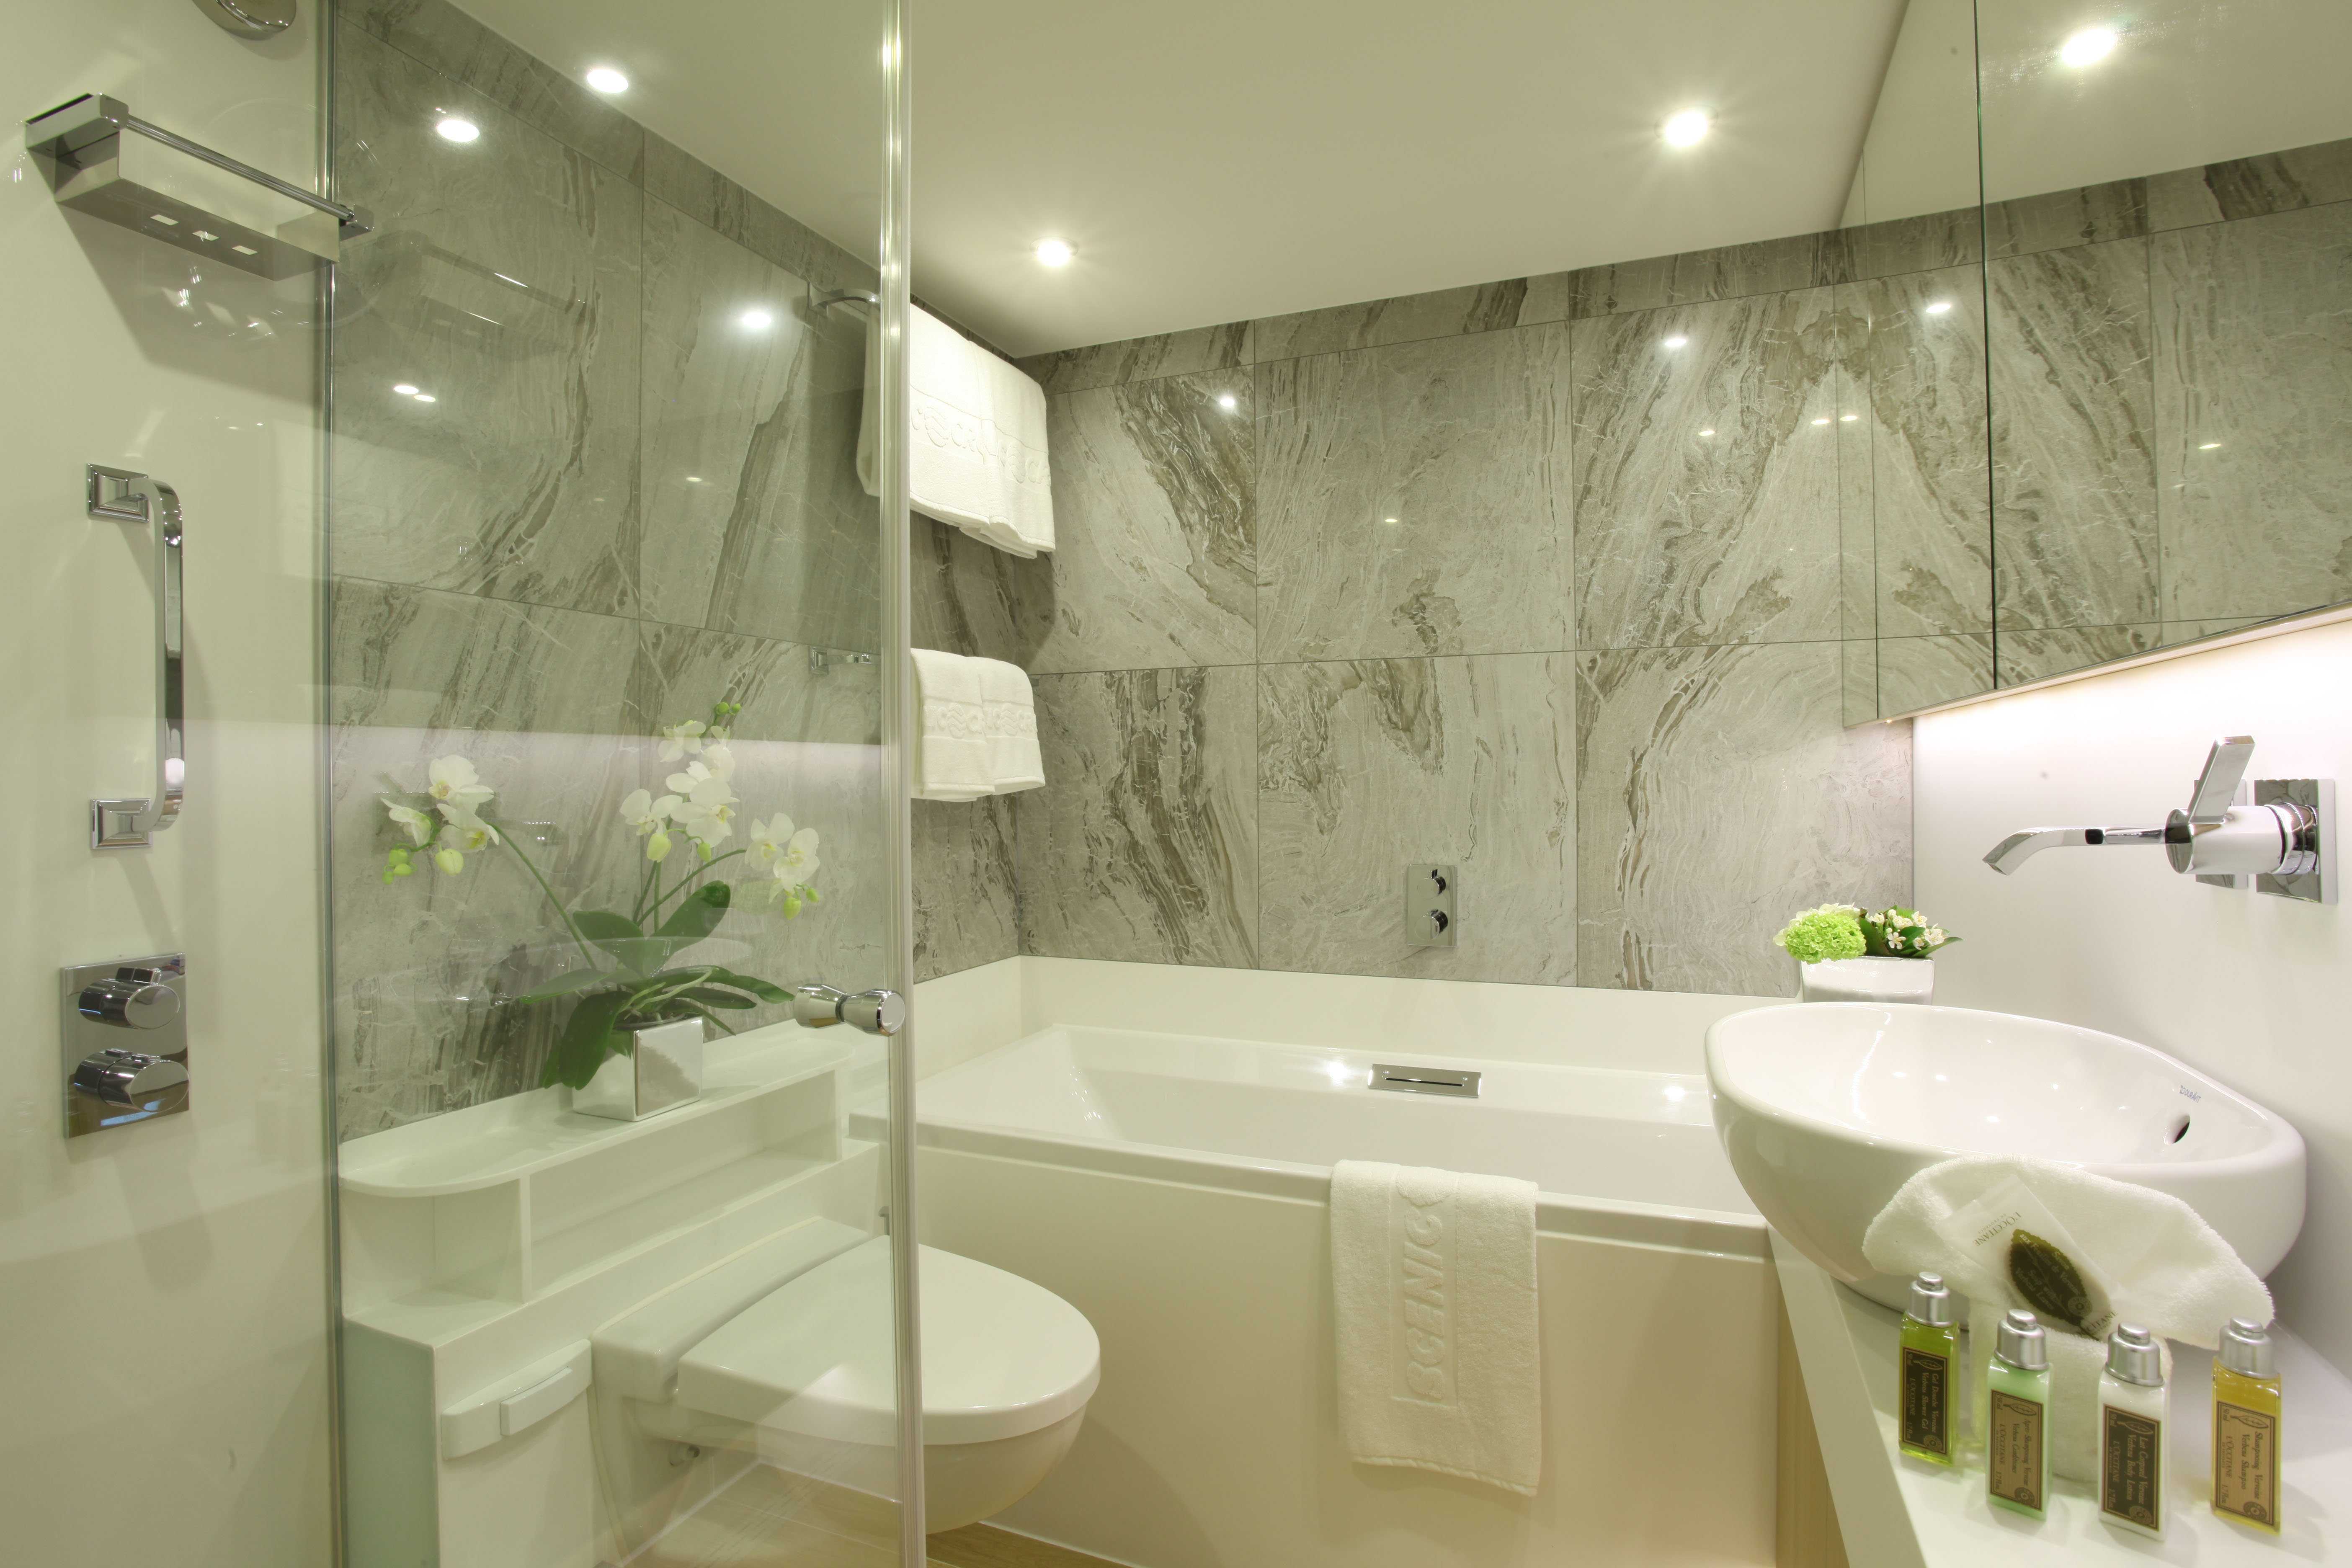 Scenic Crystal Scenic Jewel Scenic Jade Accommodation Royal Suite Bathroom.jpg